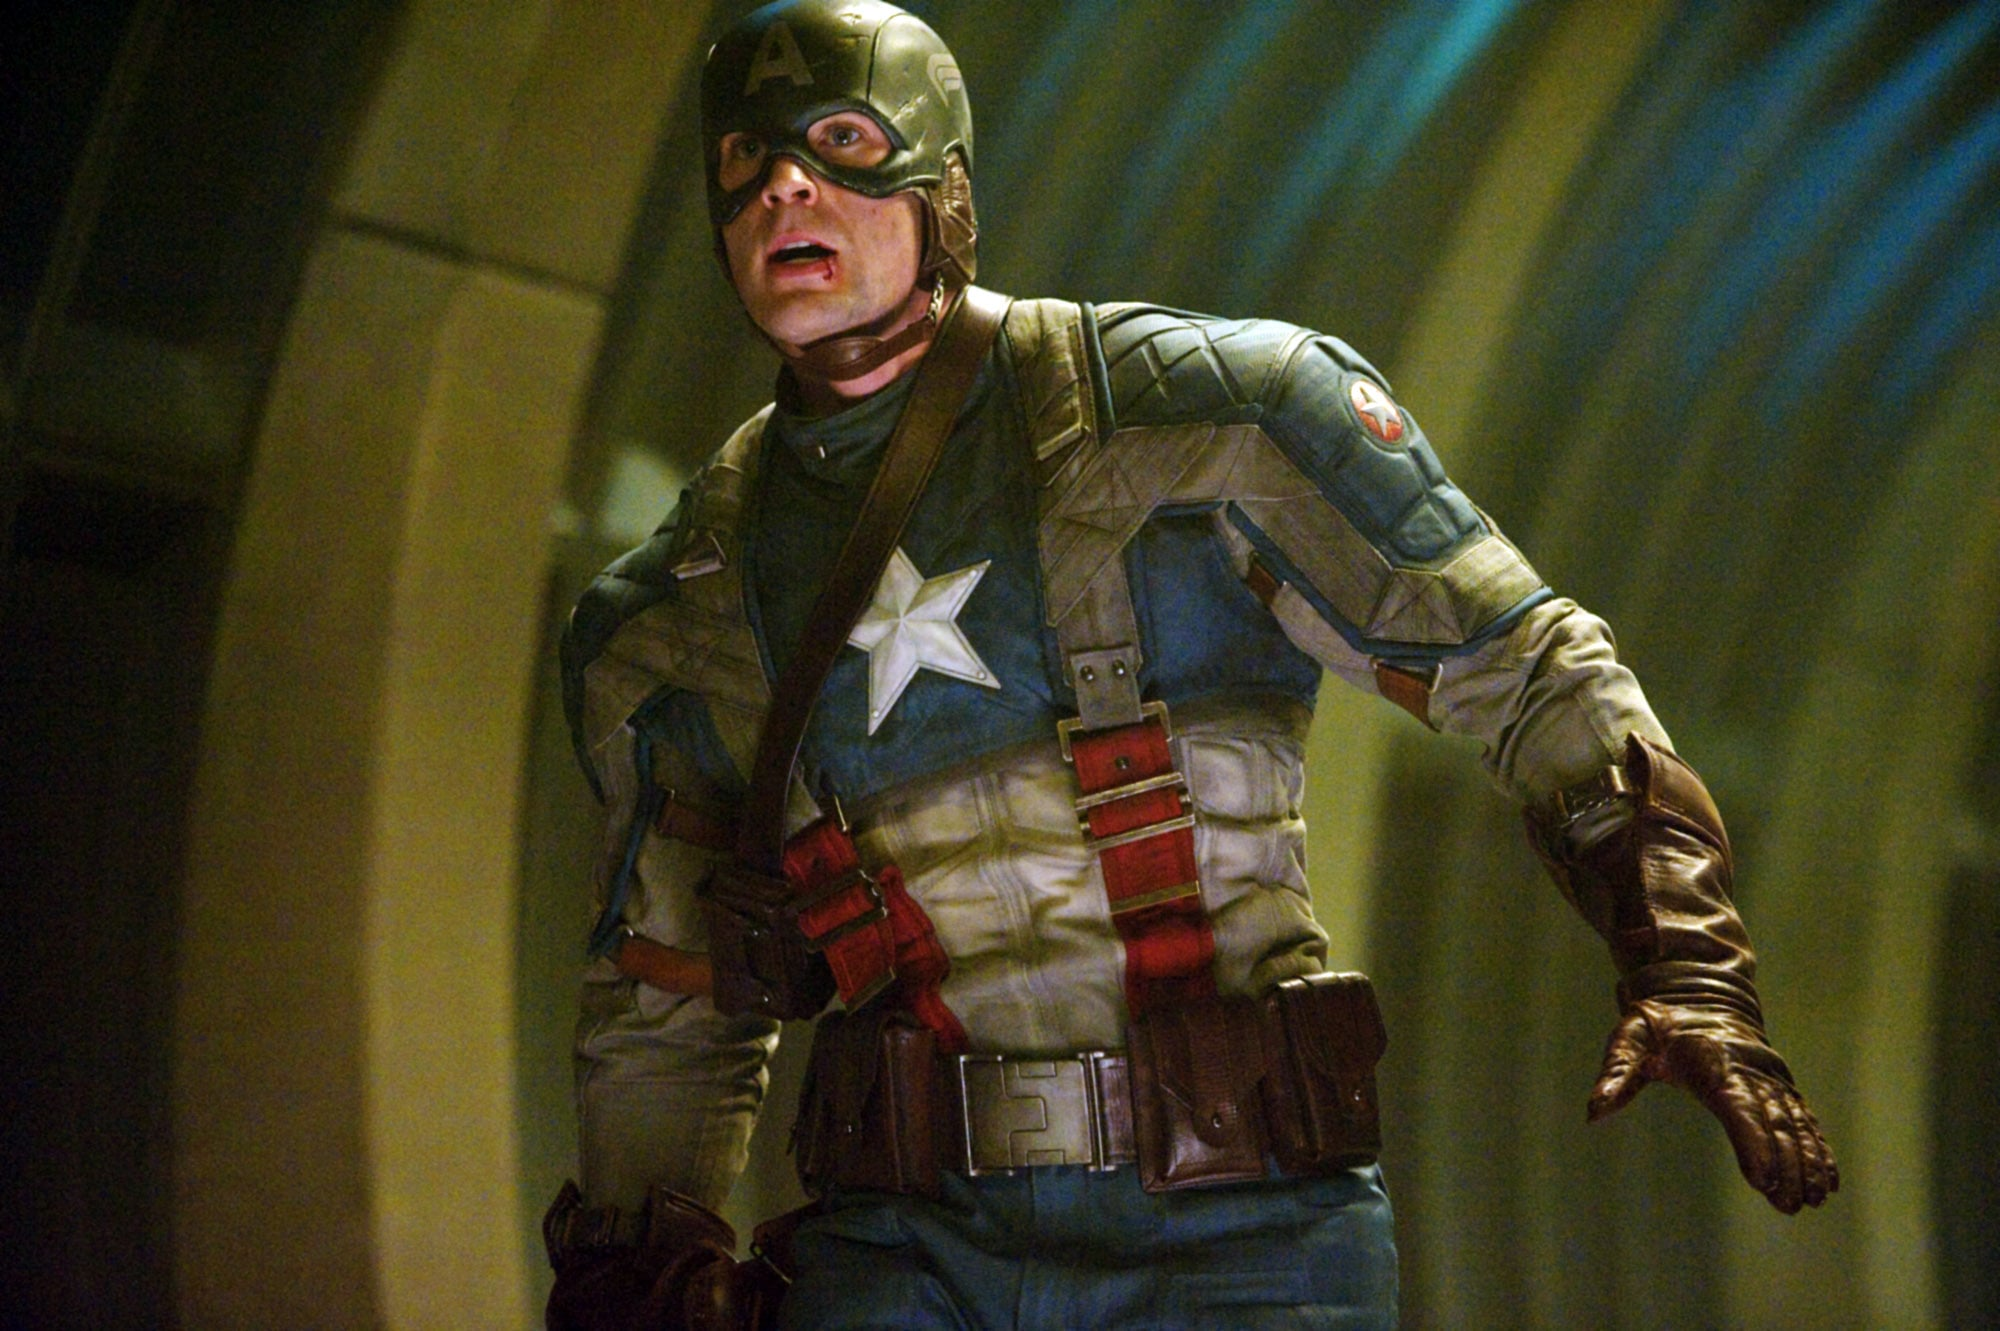 CAPTAIN AMERICA: THE FIRST AVENGER, Chris Evans, 2011. Ph: Jay Maidment/Marvel Studios2011 MVLFFLLC. TM &2011 Marvel. All Rights Reserved./Paramount Pictures/courtesy Everett Collection